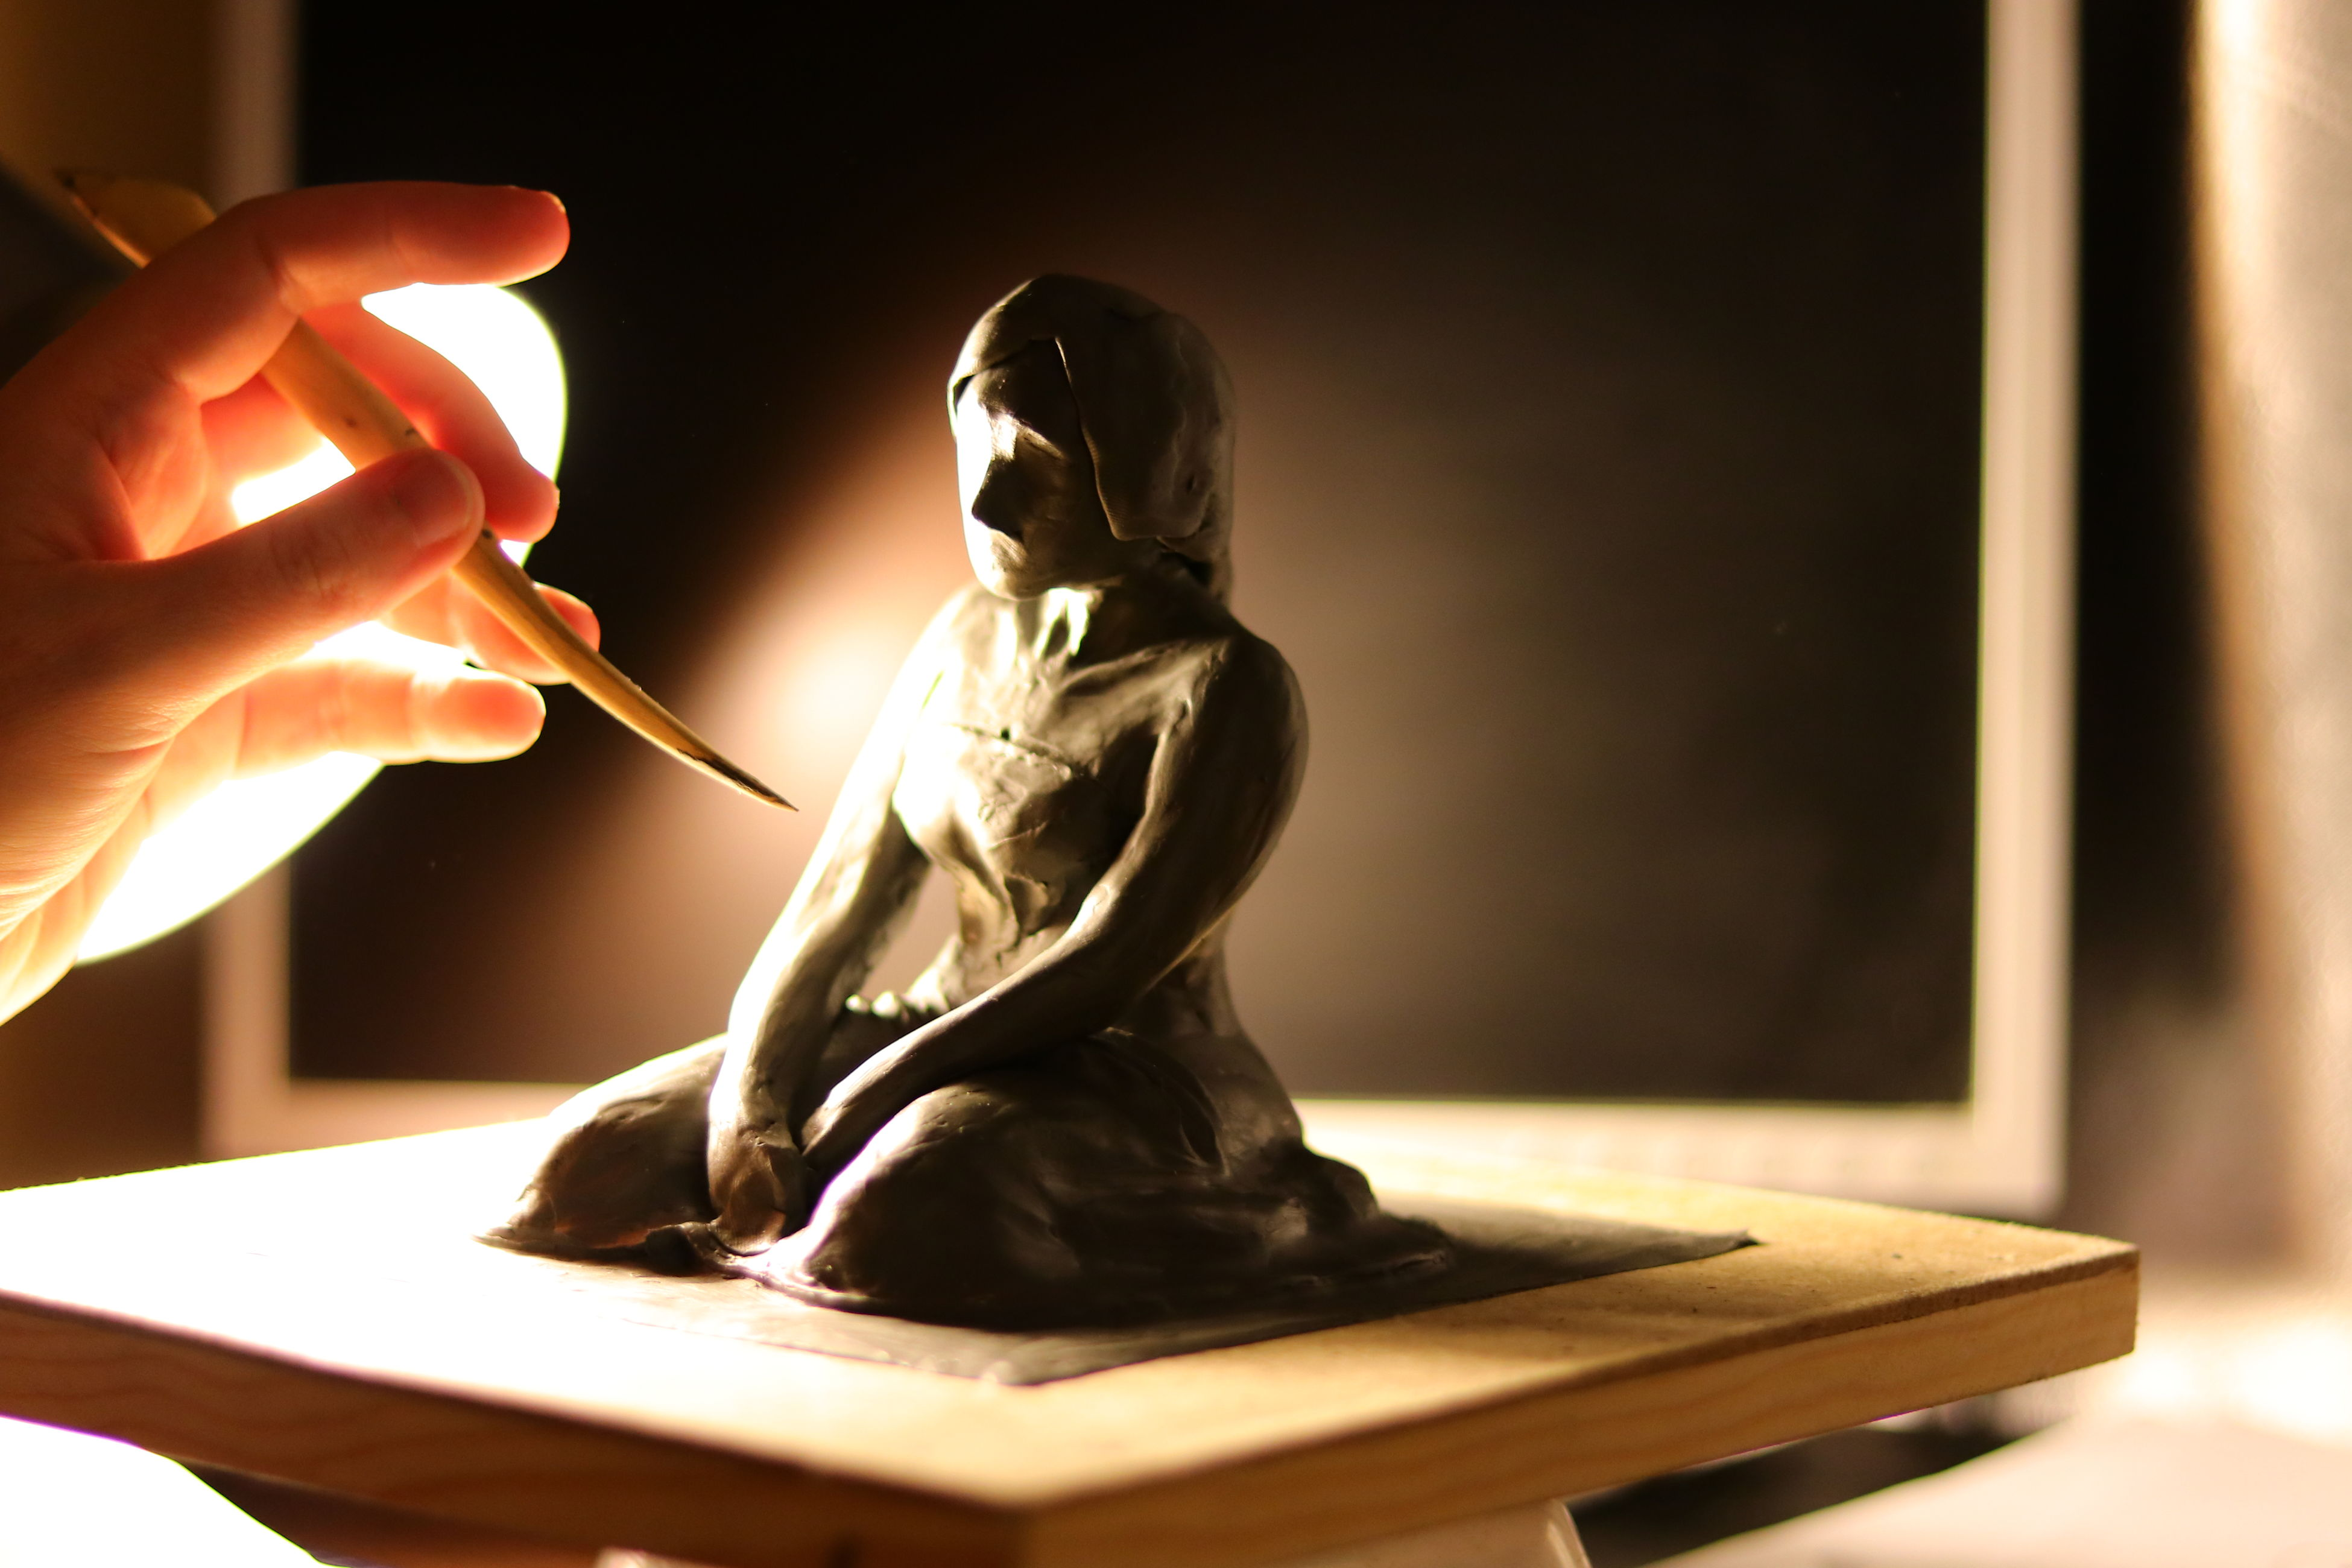 indoors, statue, real people, one person, sculpture, sitting, close-up, human hand, day